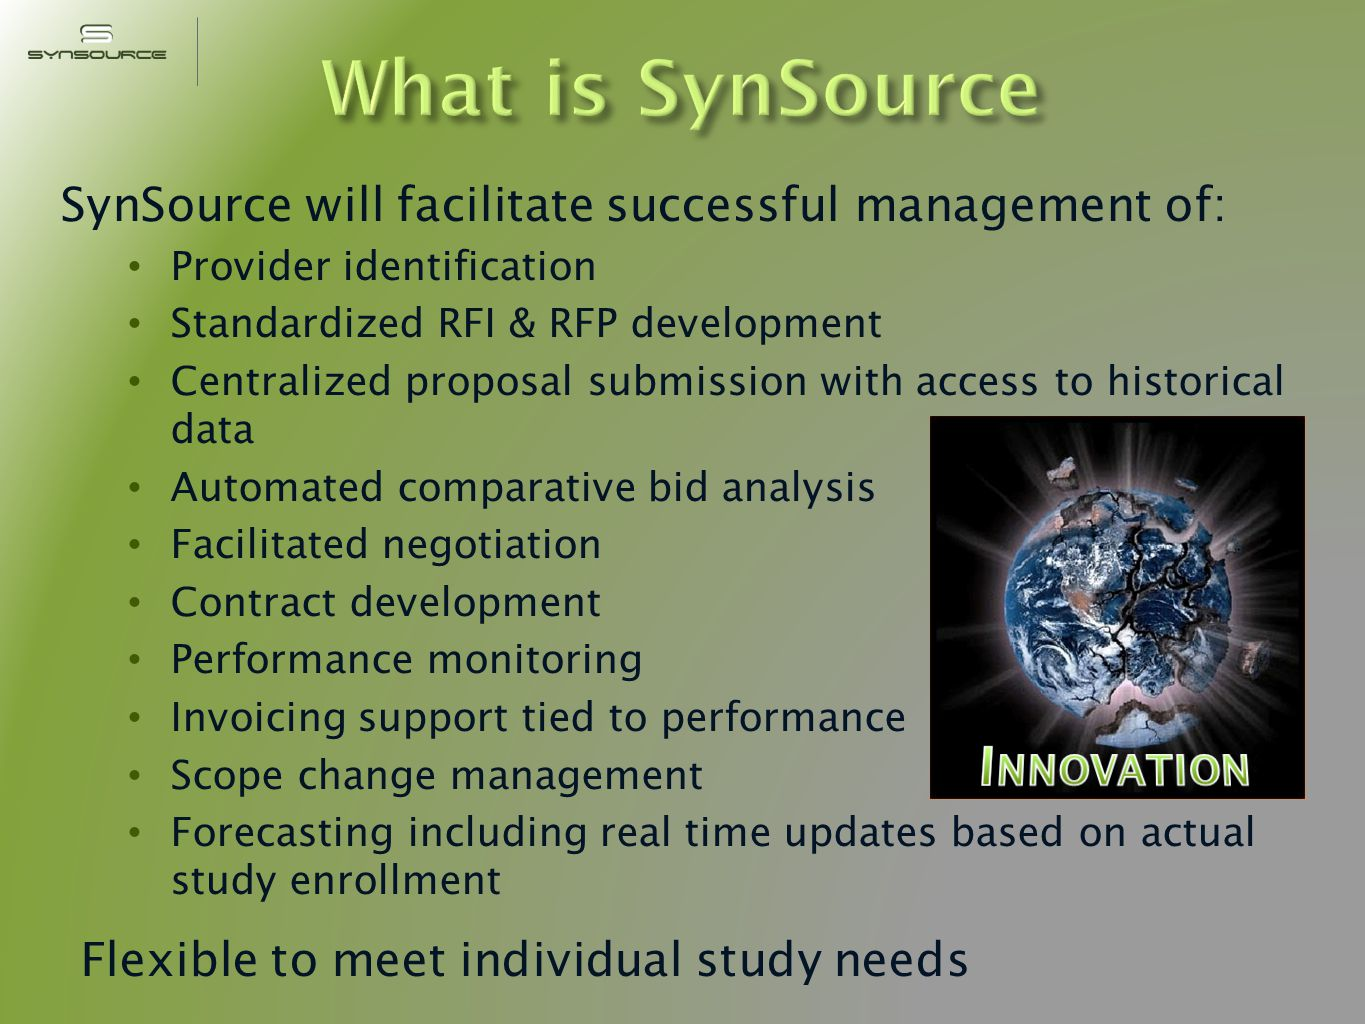 SynSource will facilitate successful management of: Provider identification Standardized RFI & RFP development Centralized proposal submission with access to historical data Automated comparative bid analysis Facilitated negotiation Contract development Performance monitoring Invoicing support tied to performance Scope change management Forecasting including real time updates based on actual study enrollment Flexible to meet individual study needs